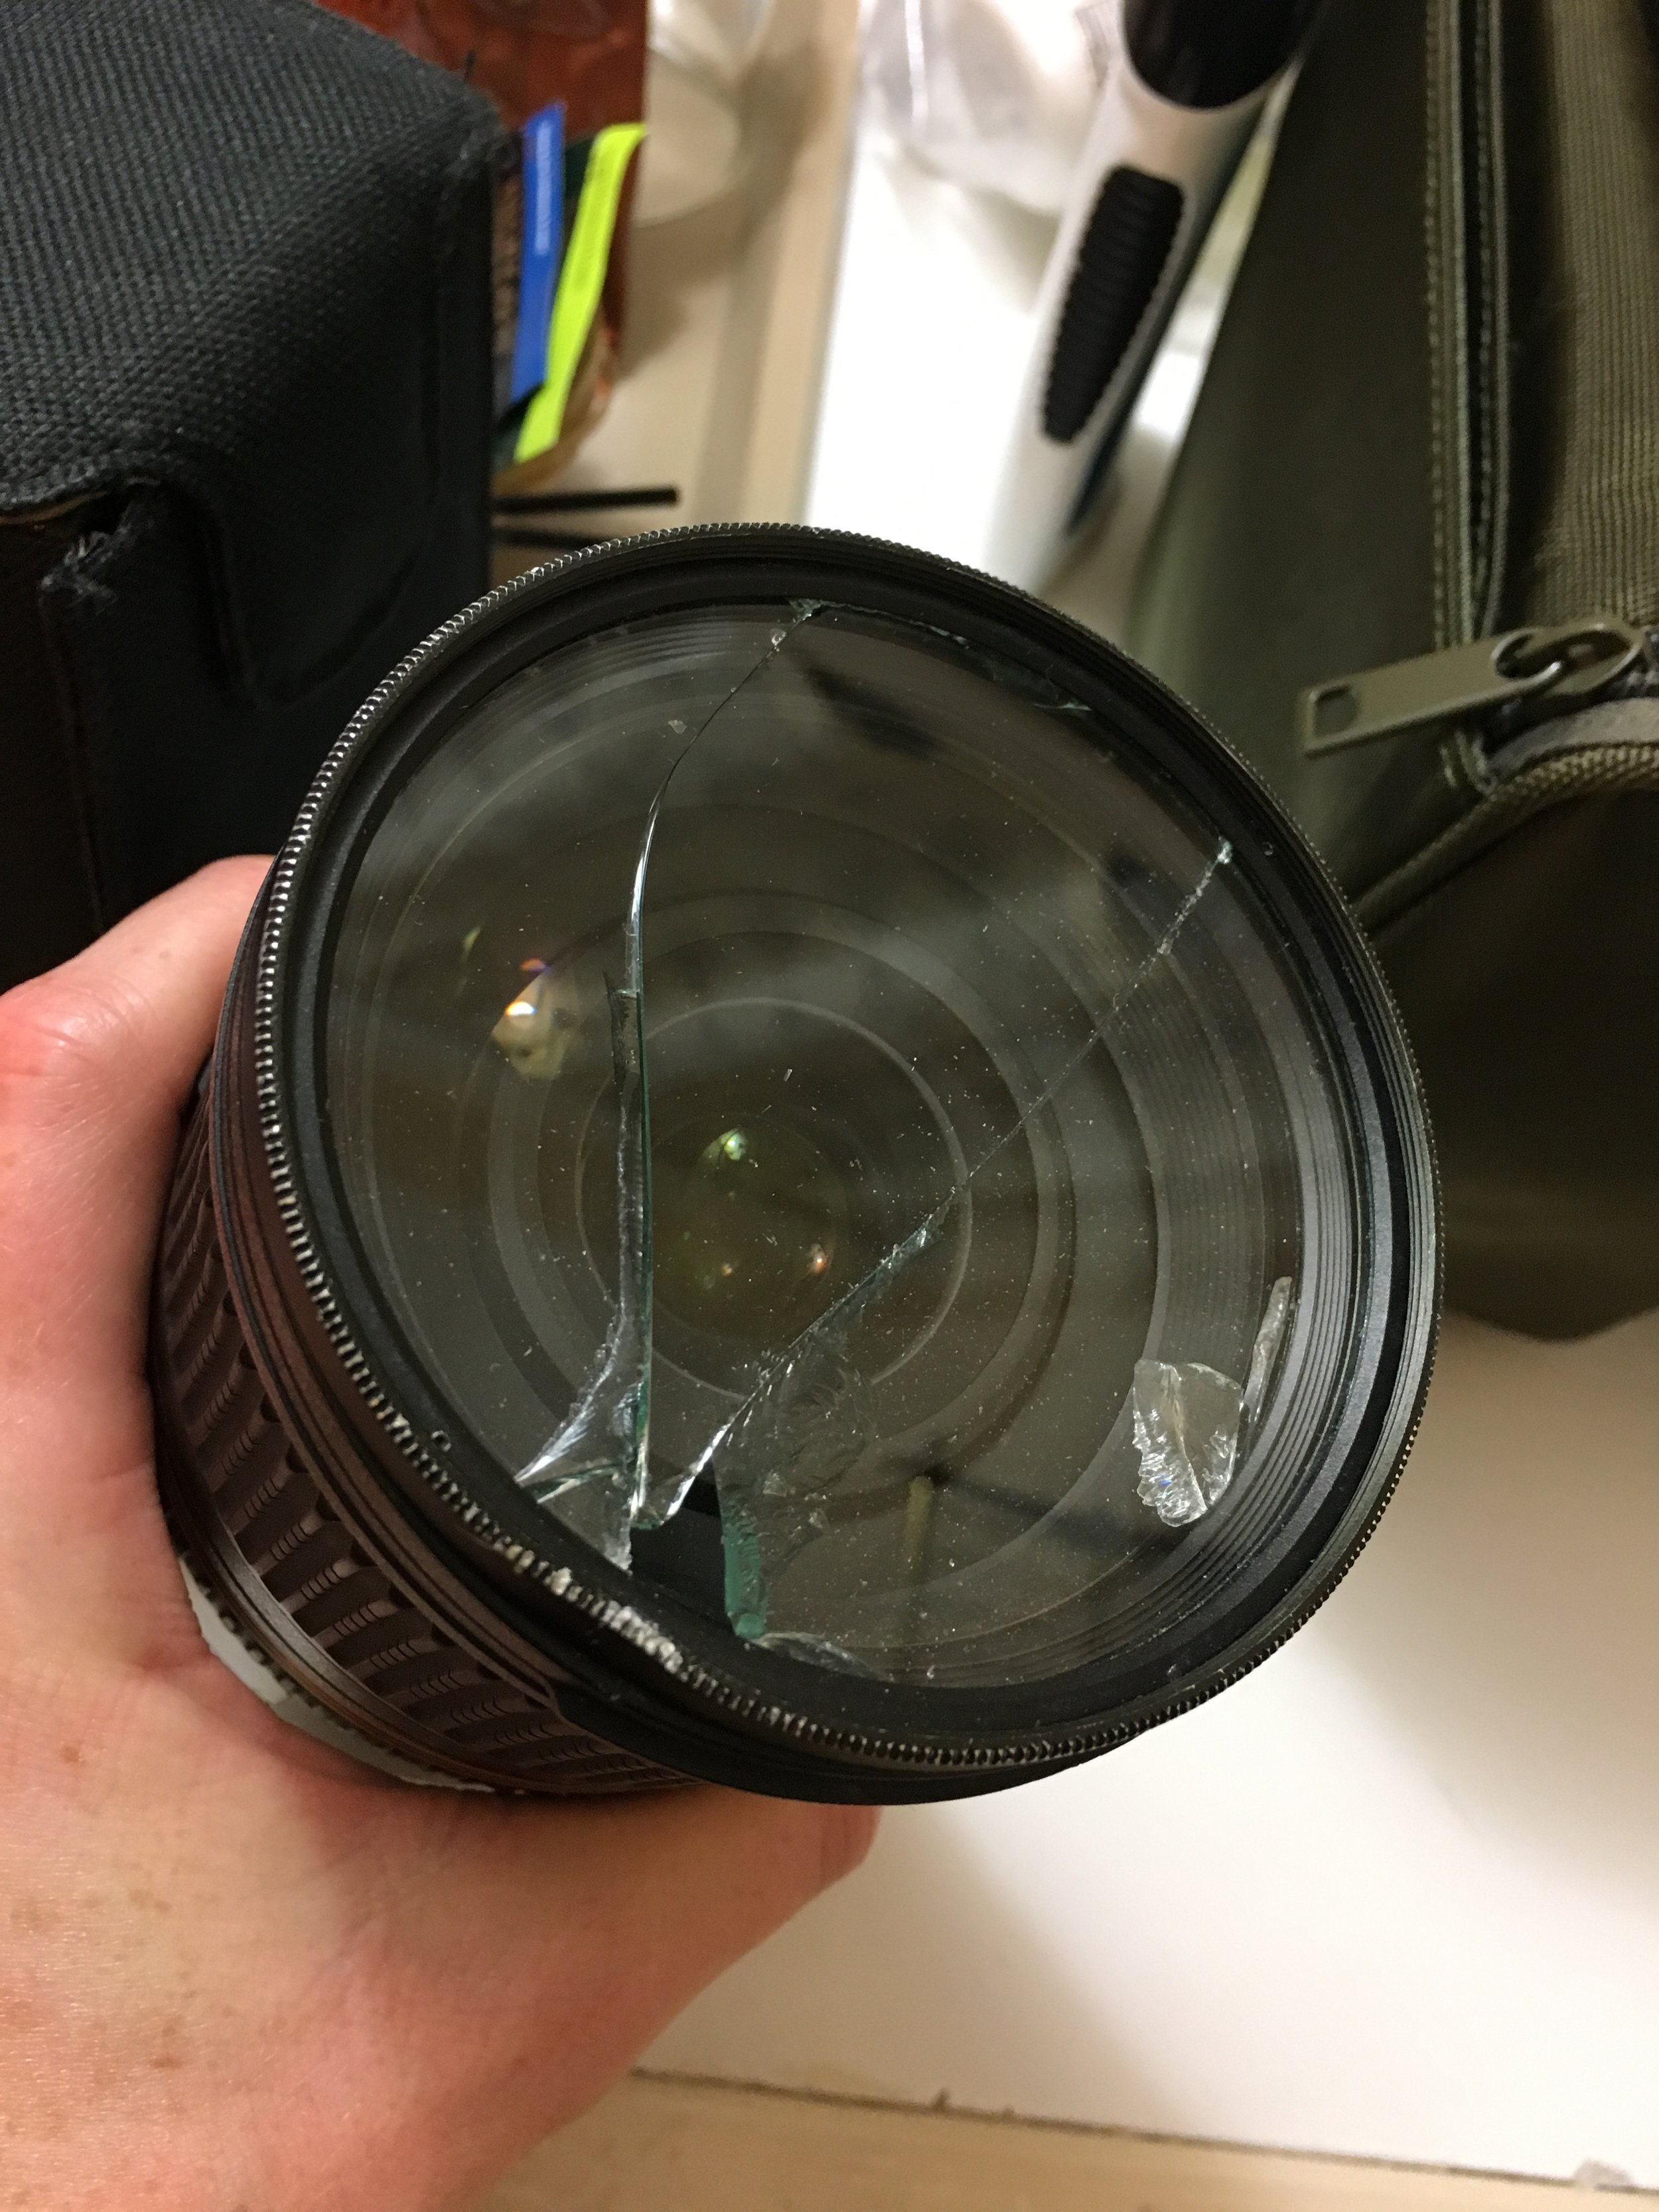 Slipped on a rock and landed right on my lens, shattering the glass. More proof that these things happen to all of us...